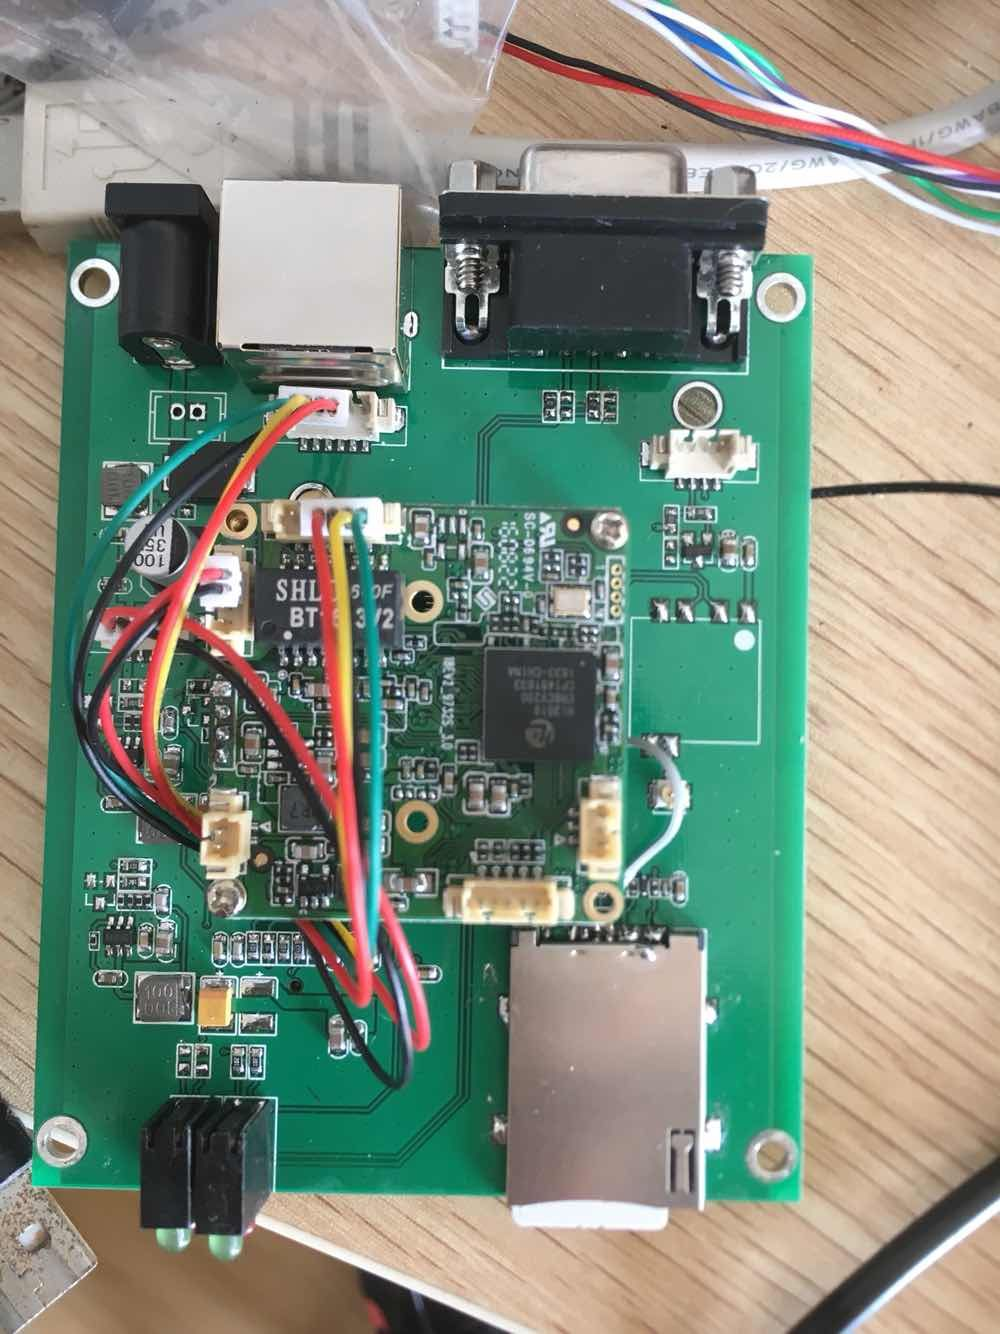 The whole network connect 4g router with serial port to connect the